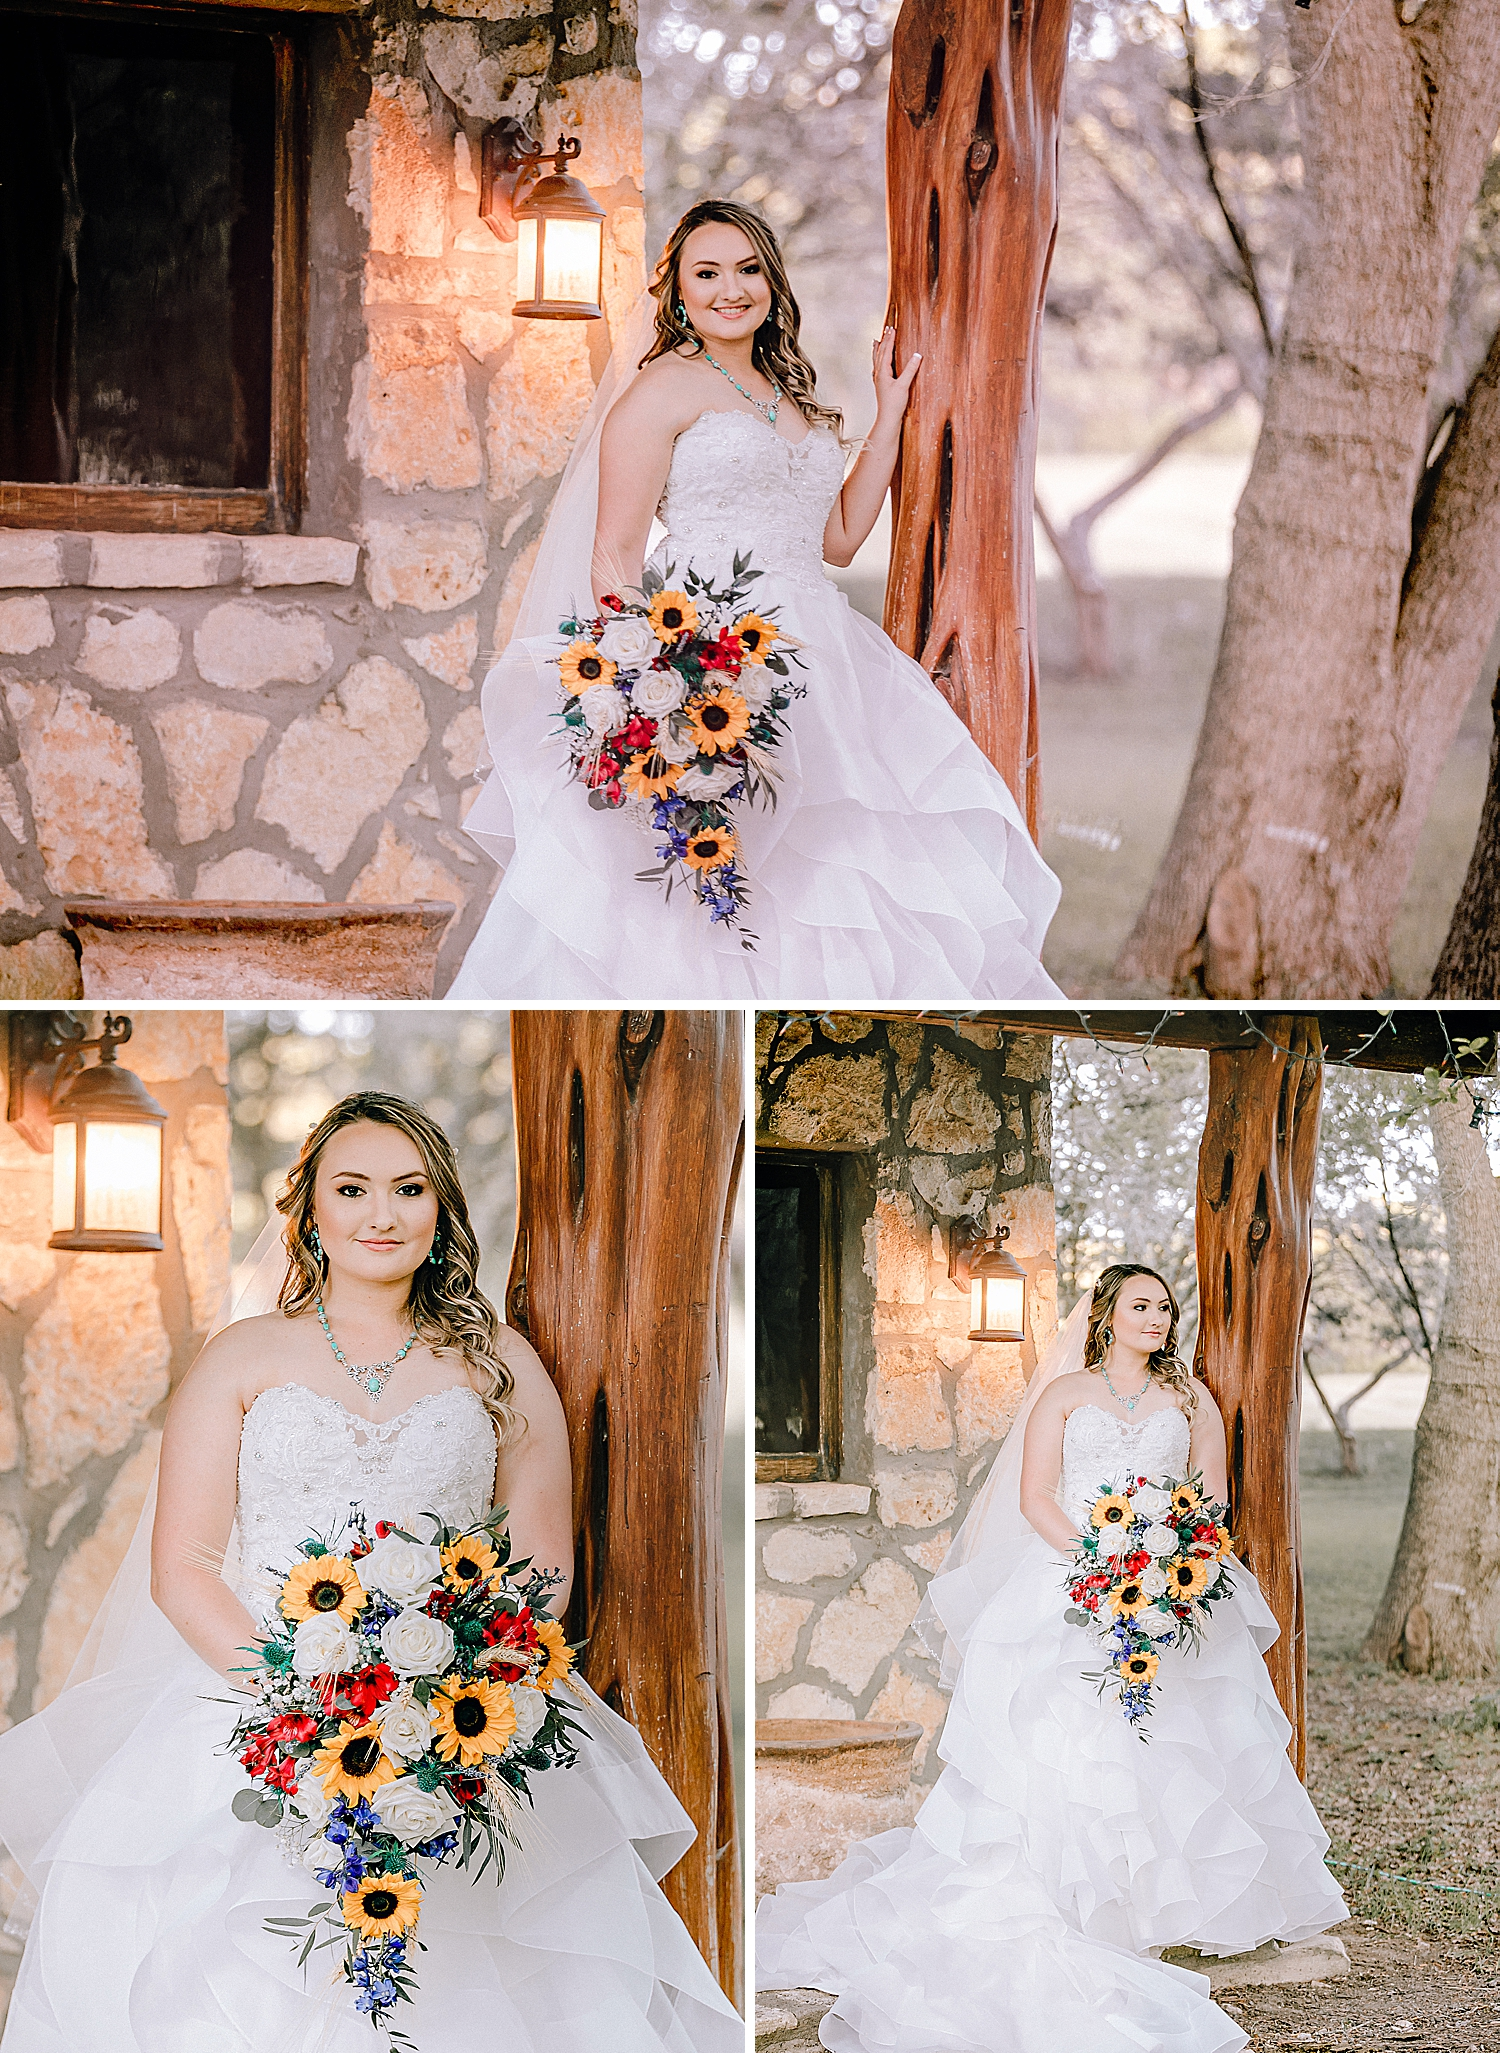 Carly-Barton-Photography-Texas-Bridals-Boerne-Rustic-Wedding-Photos_0008.jpg